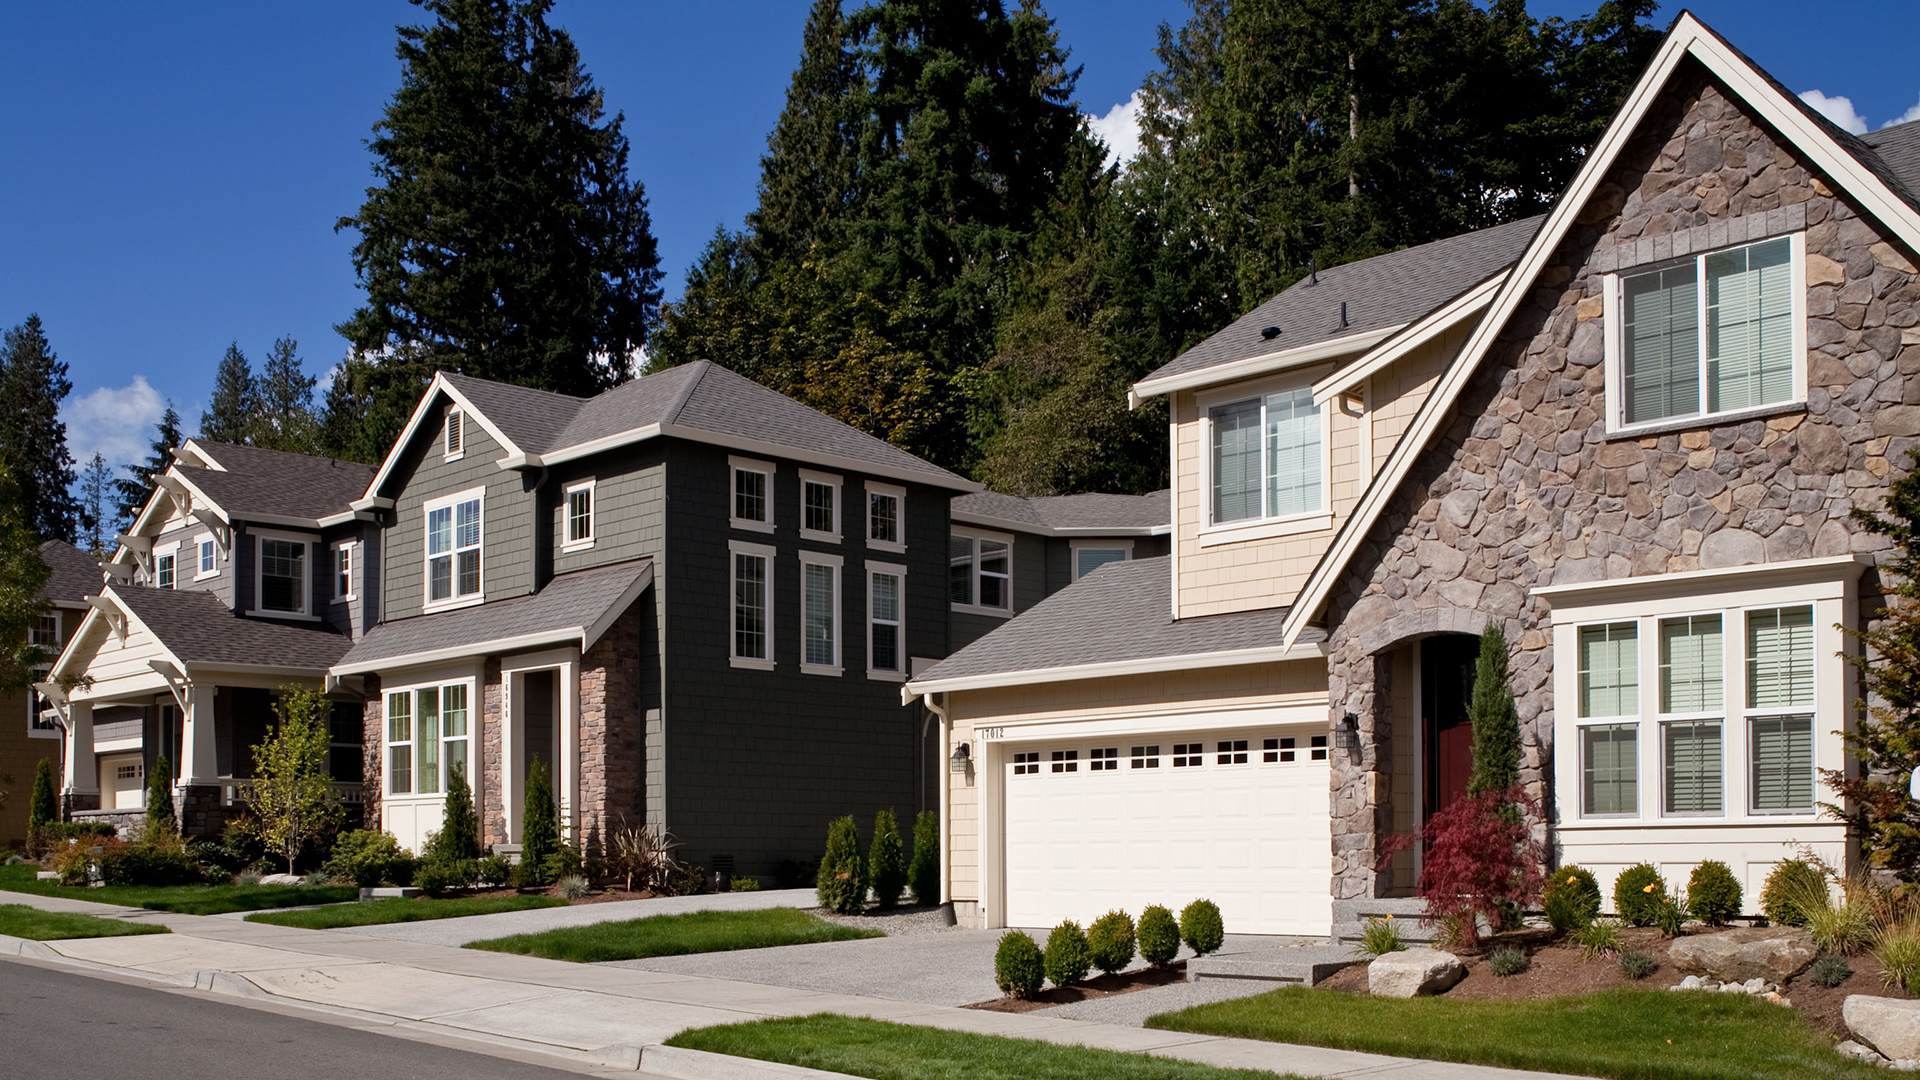 Come home to the picturesque streetscape of Timber Creek.